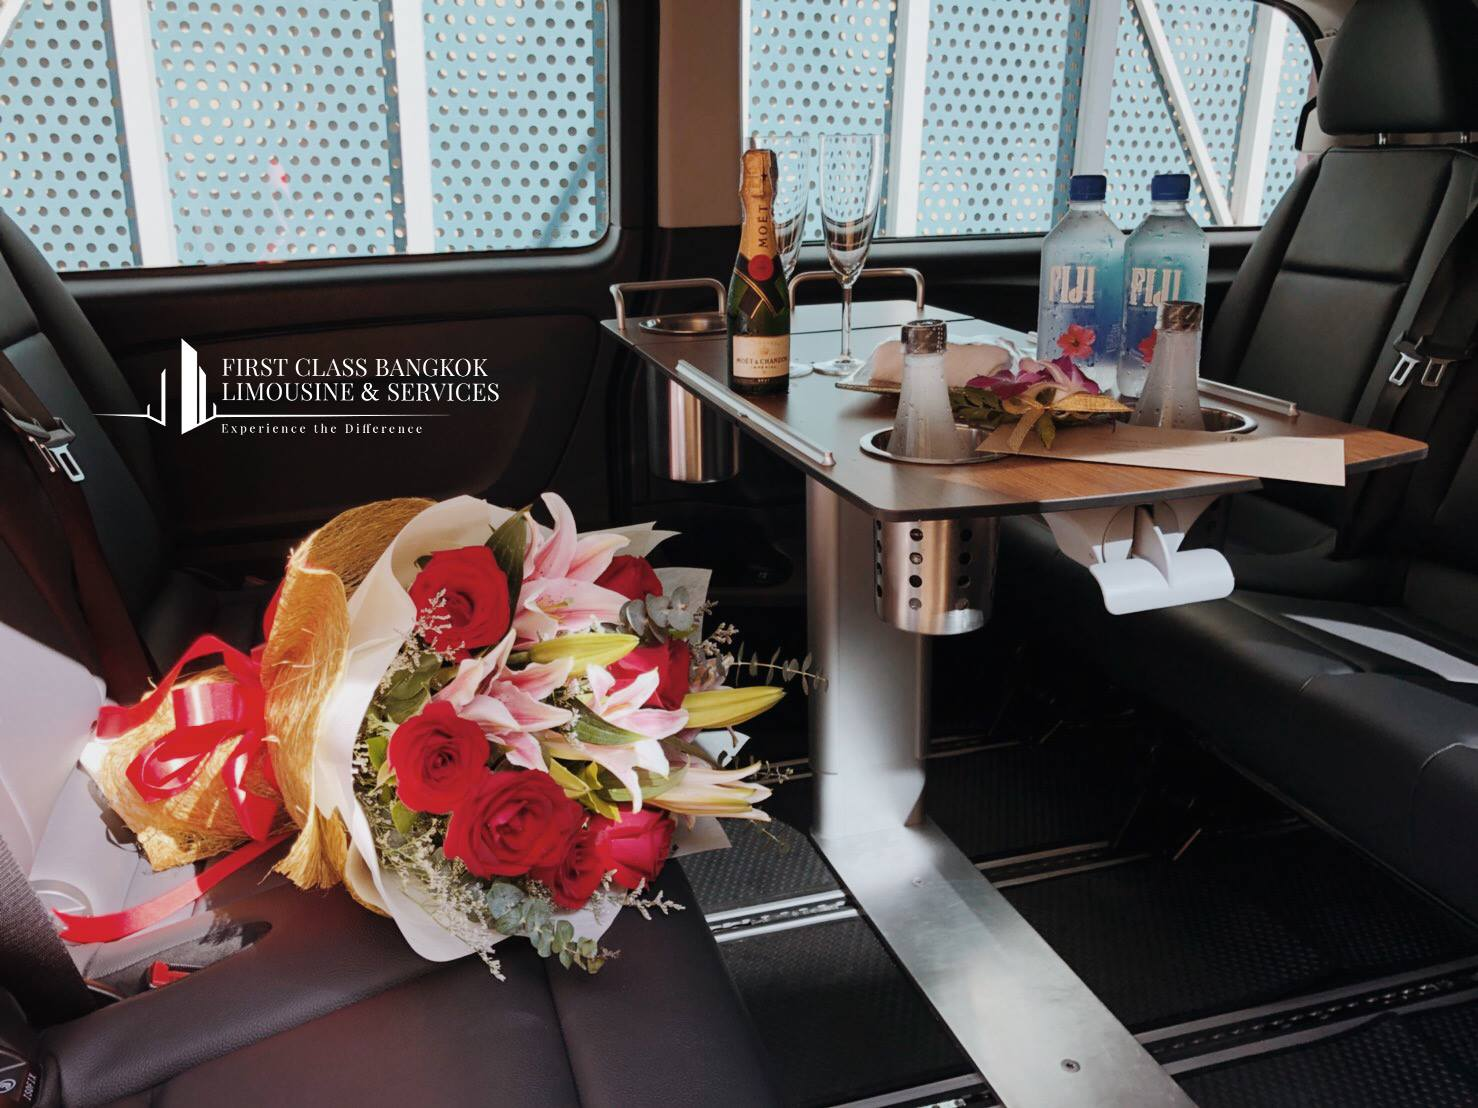 Image of How about a Romantic First Class Bangkok Limousine Airport Transfer